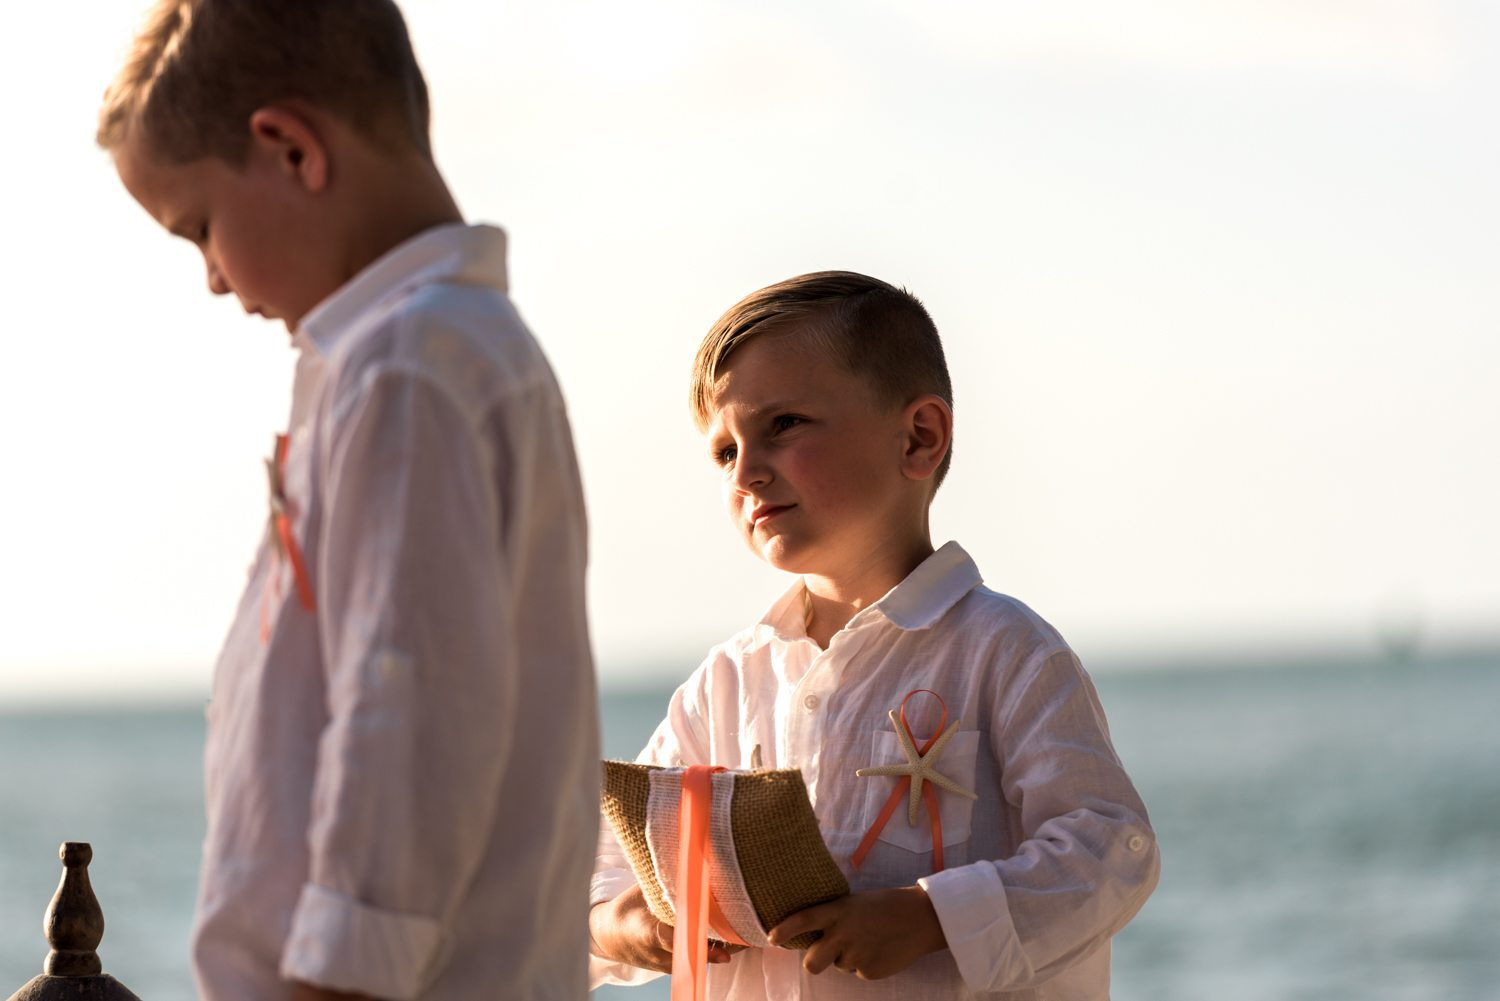 Erin Colin Fort Zachary Taylor Rooftop Cafe Key West Wedding Photographer 35 - Erin & Colin   Key West Wedding Photographer   Fort Zachary Taylor